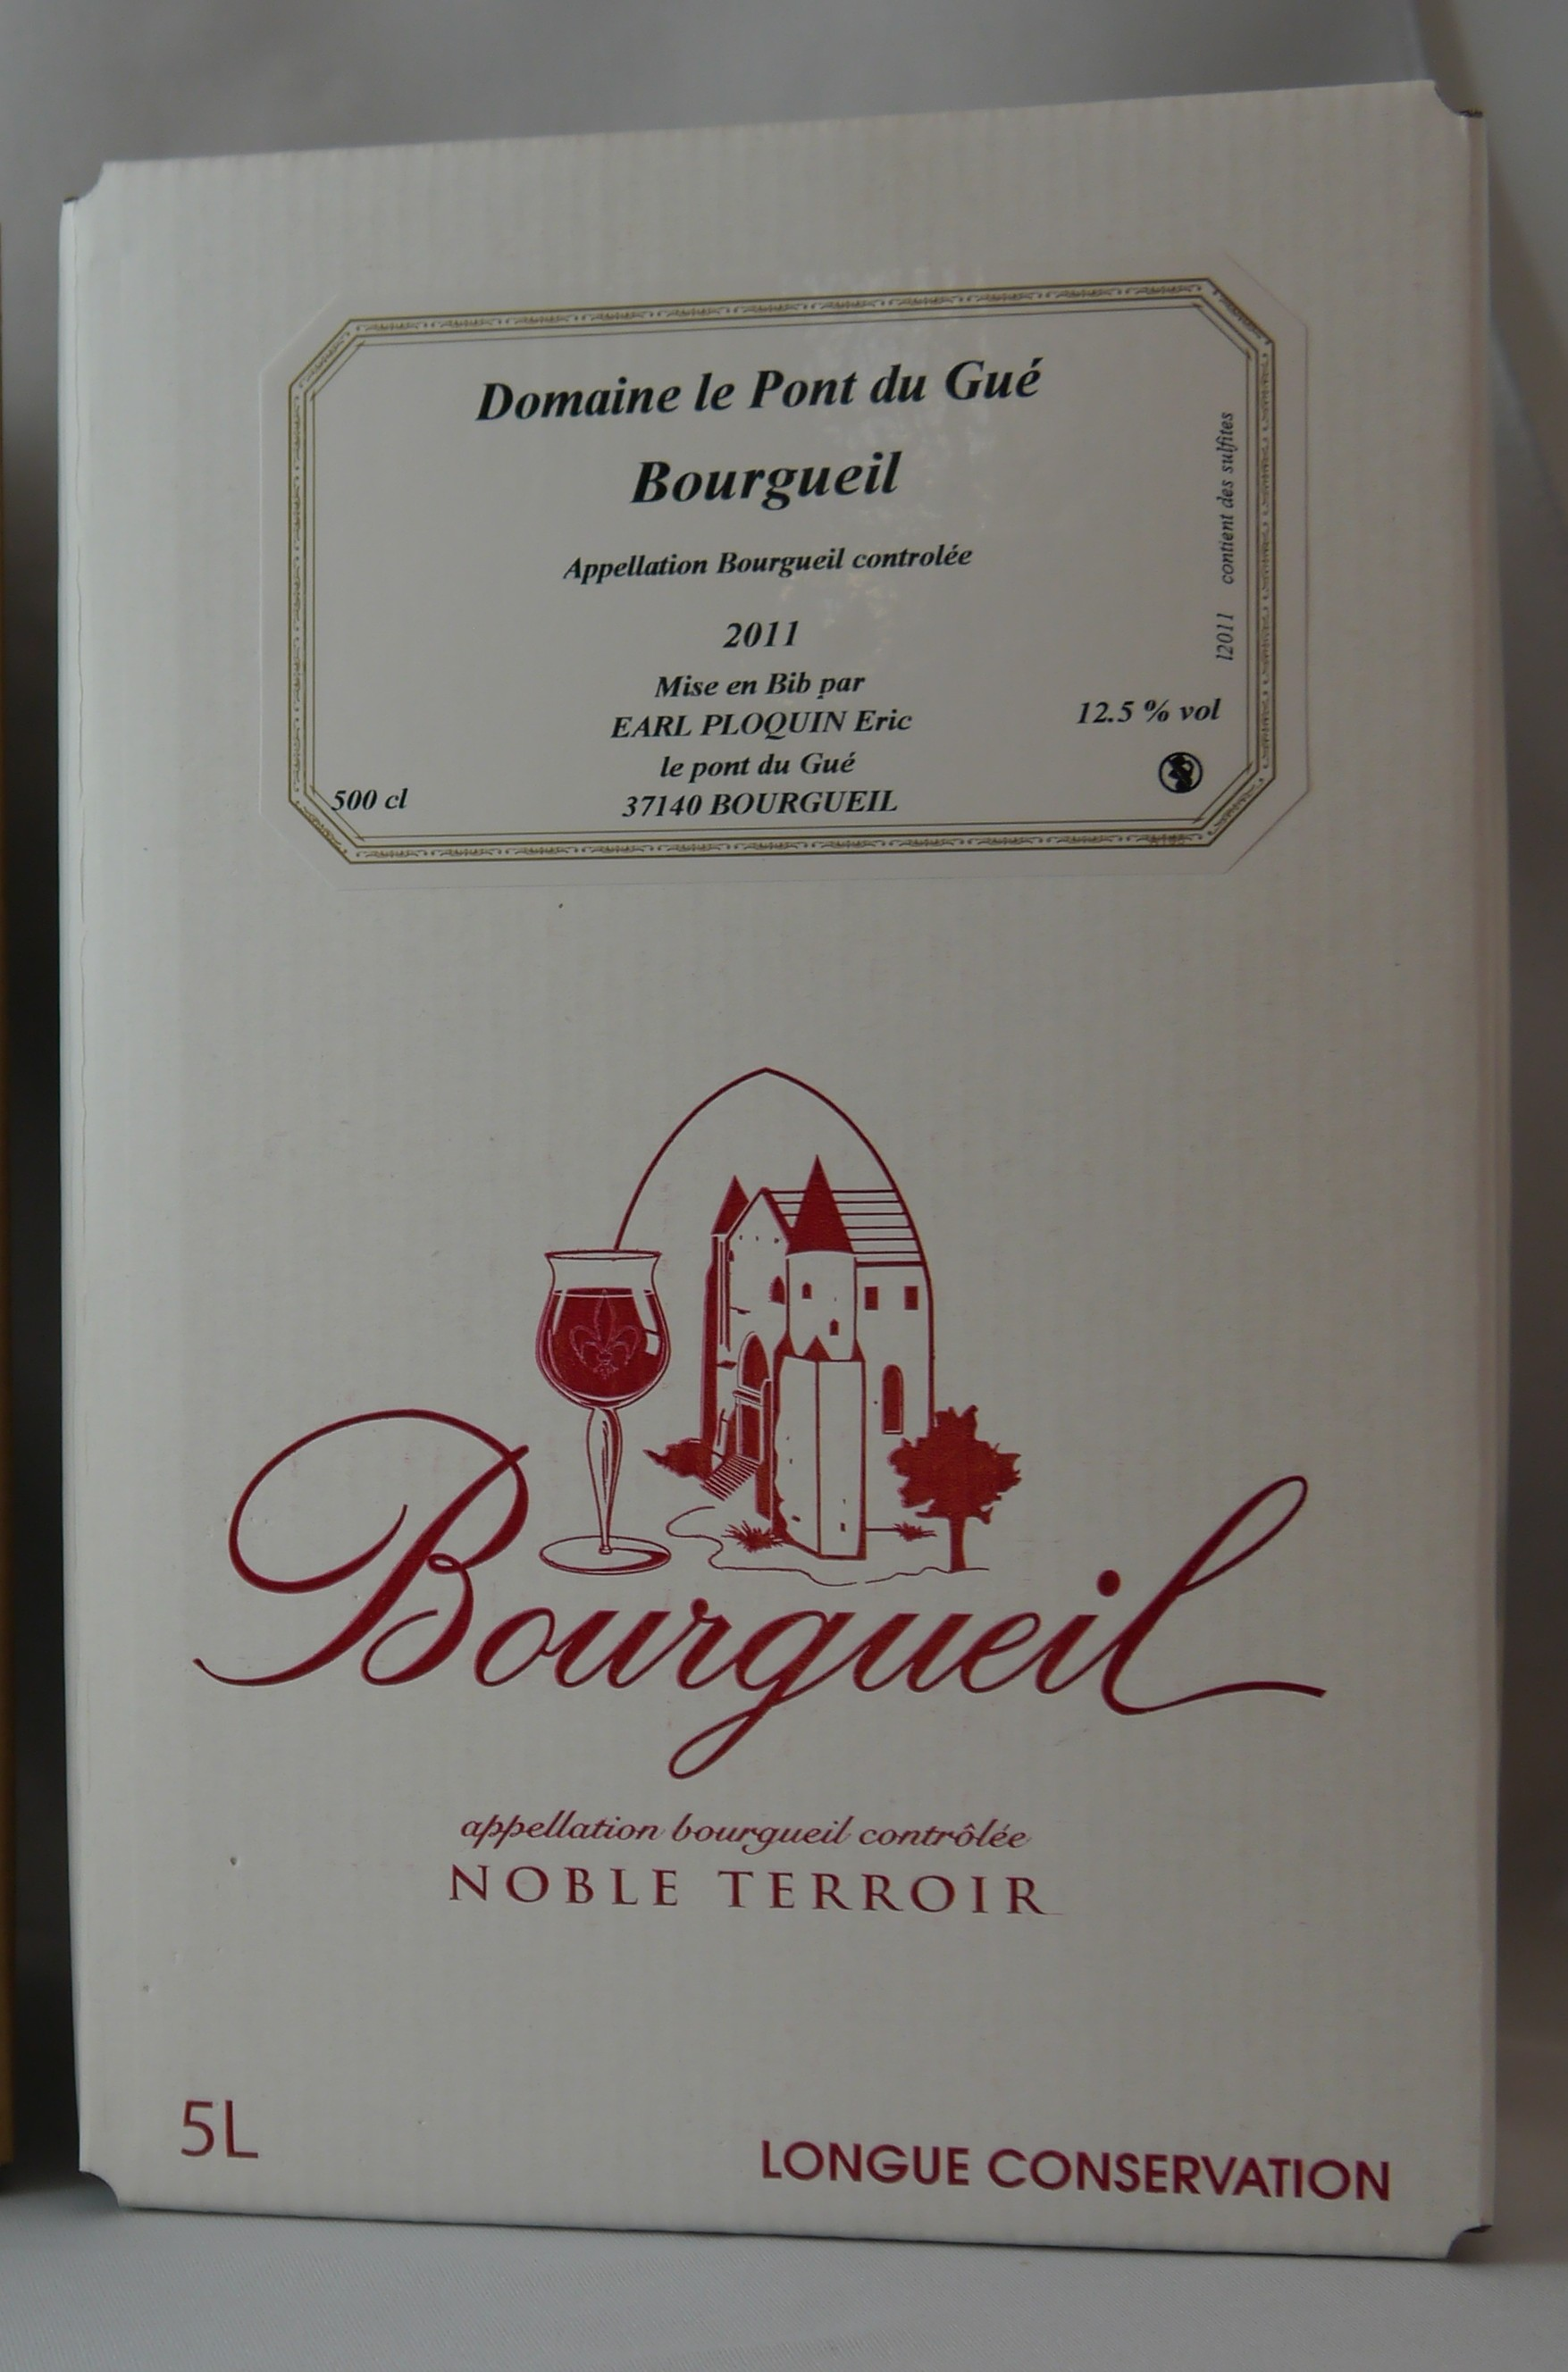 BAG IN BOX rouge - Vin BOURGUEIL - Eric PLOQUIN